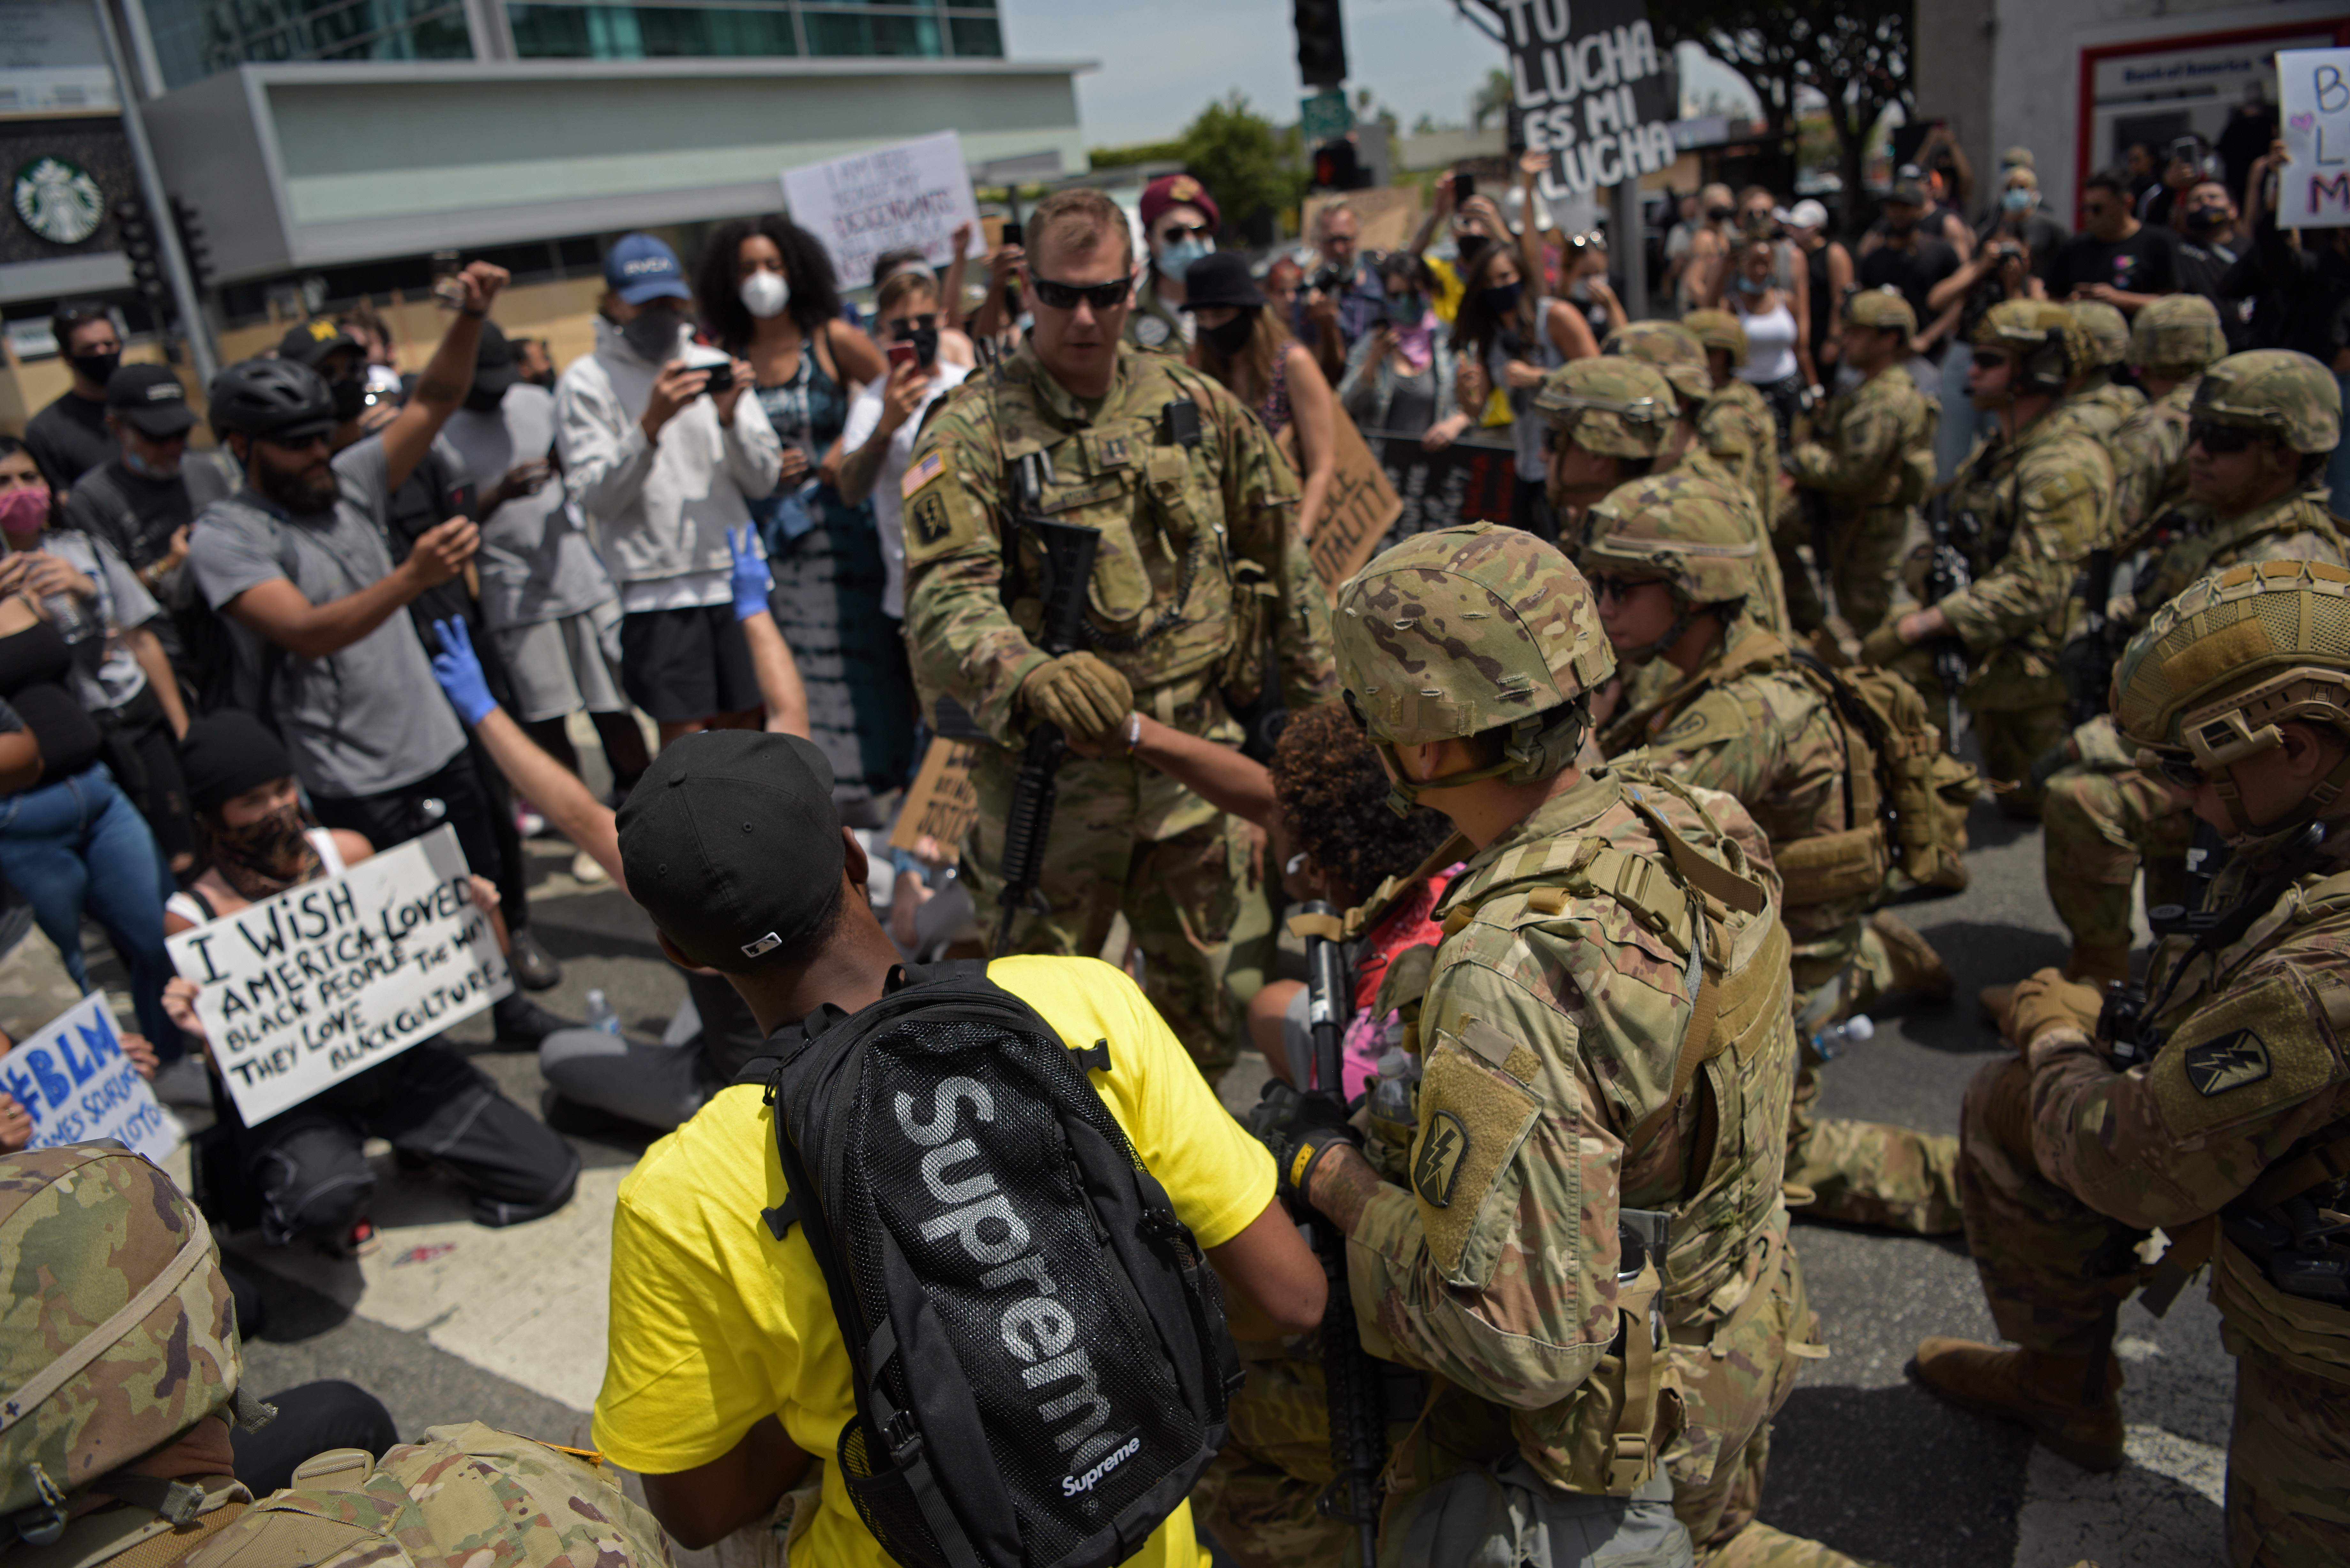 Protesters and members of the Army National Guard kneel together during a demonstration over the death of George Floyd in Los Angeles on June 2, 2020. (AGUSTIN PAULLIER/AFP via Getty Images)